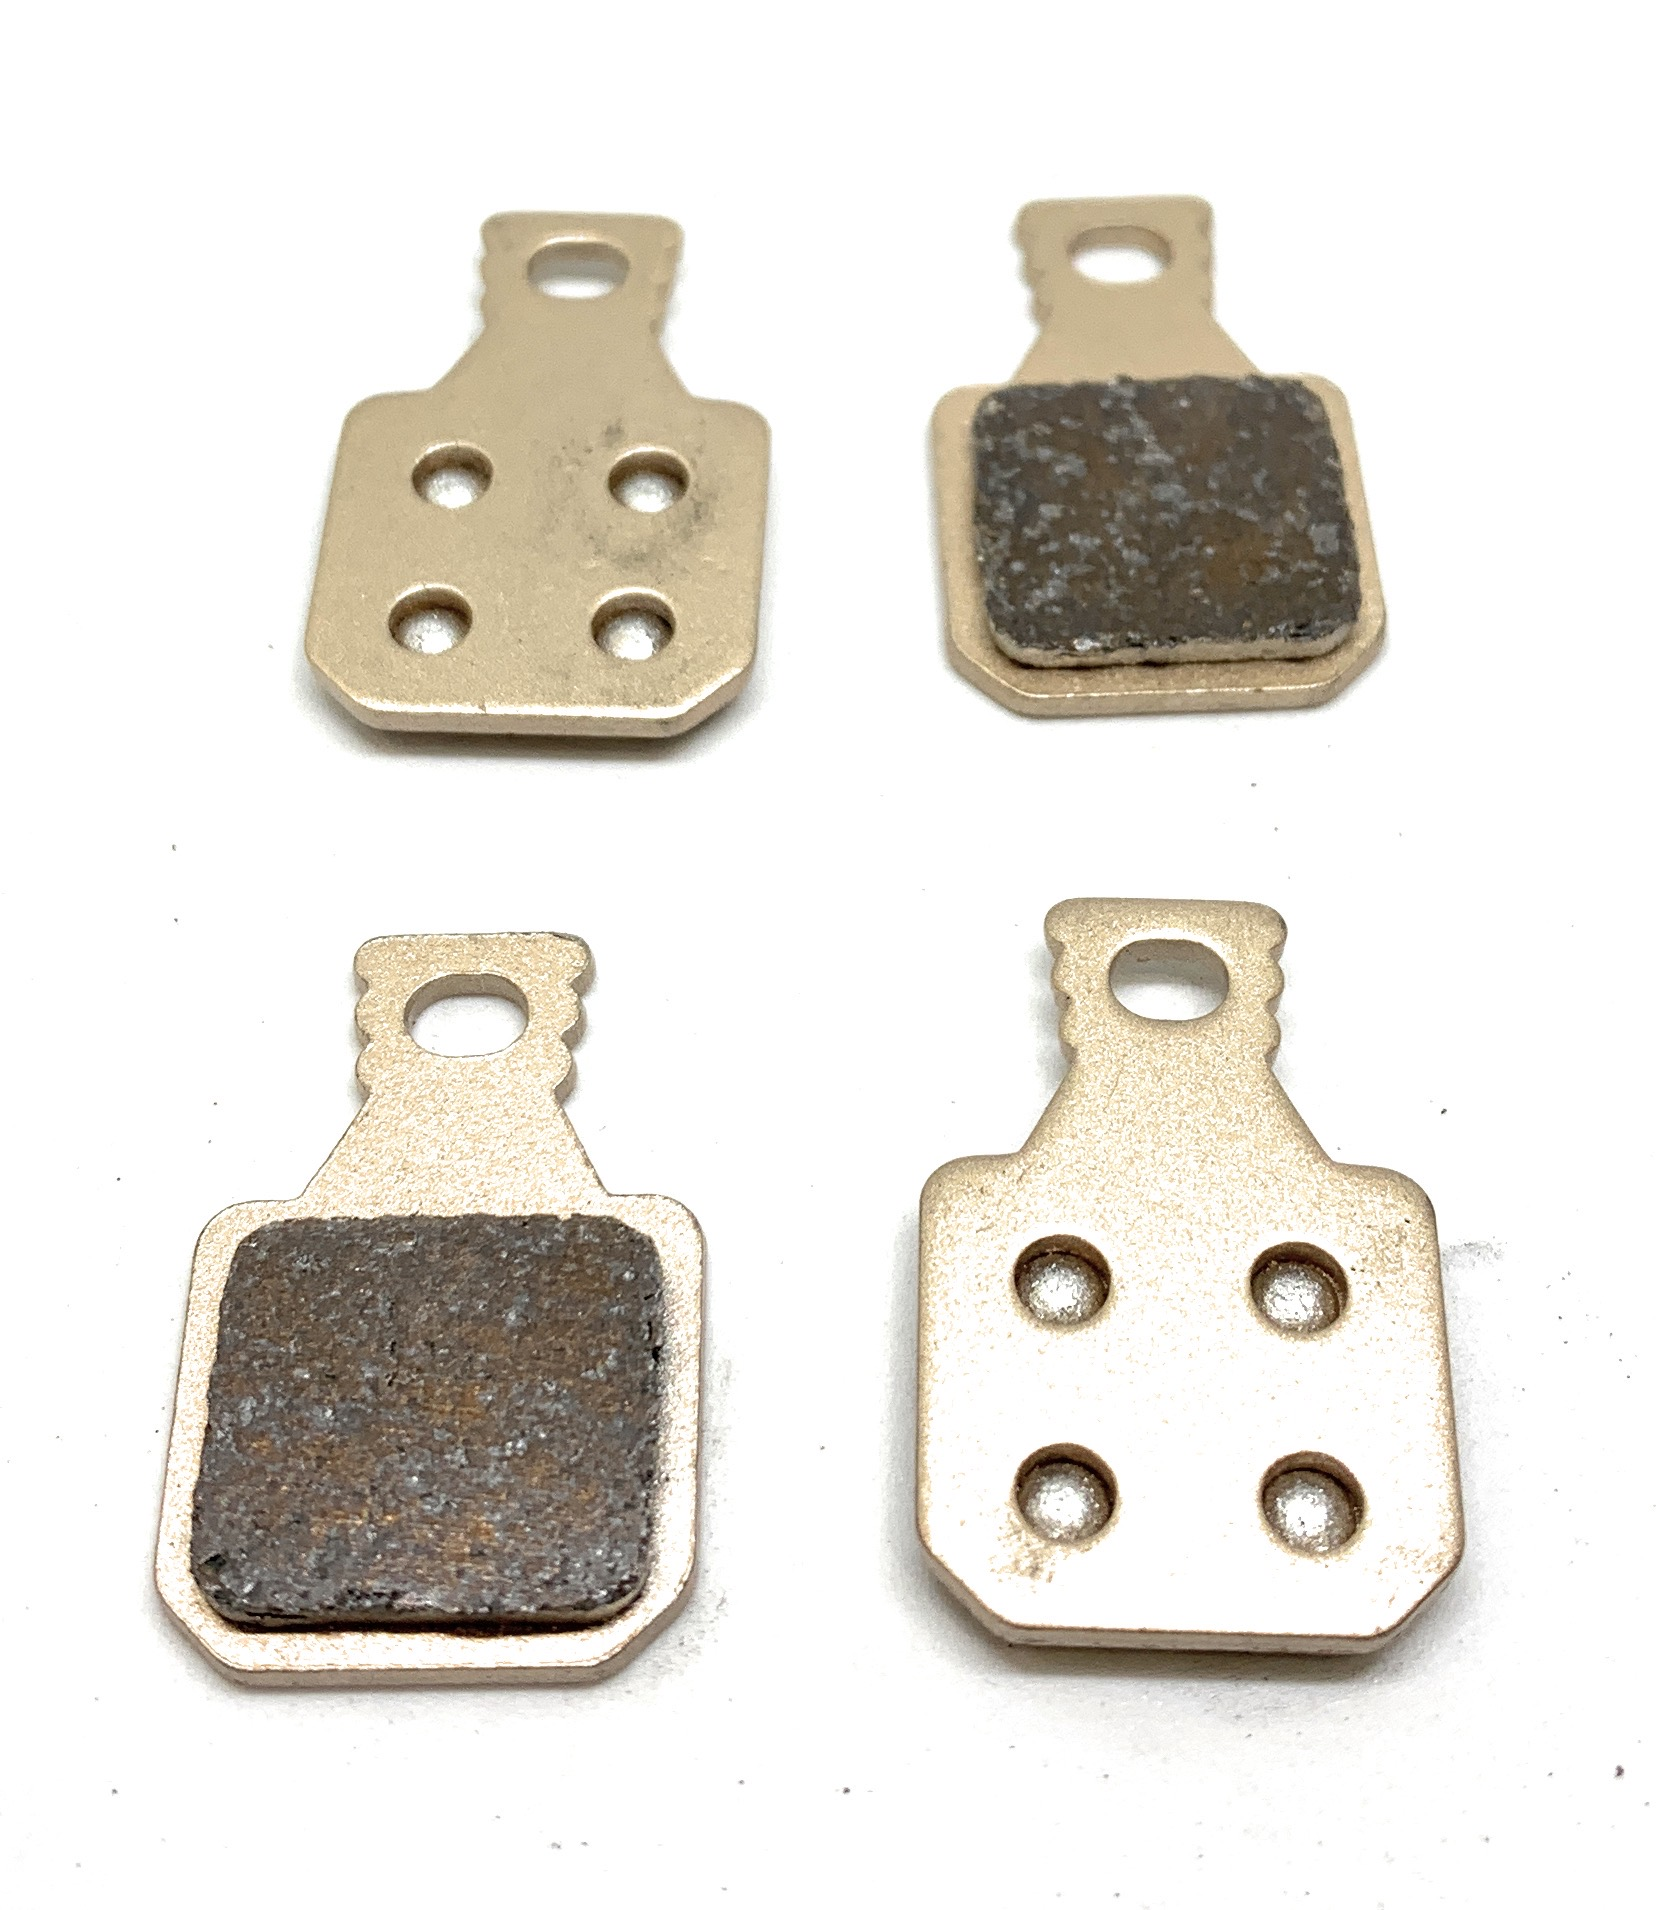 MT7 Bicycle Calipers Magura 8.R Disc Brake Pads Race Compound 4 Pads for MT5